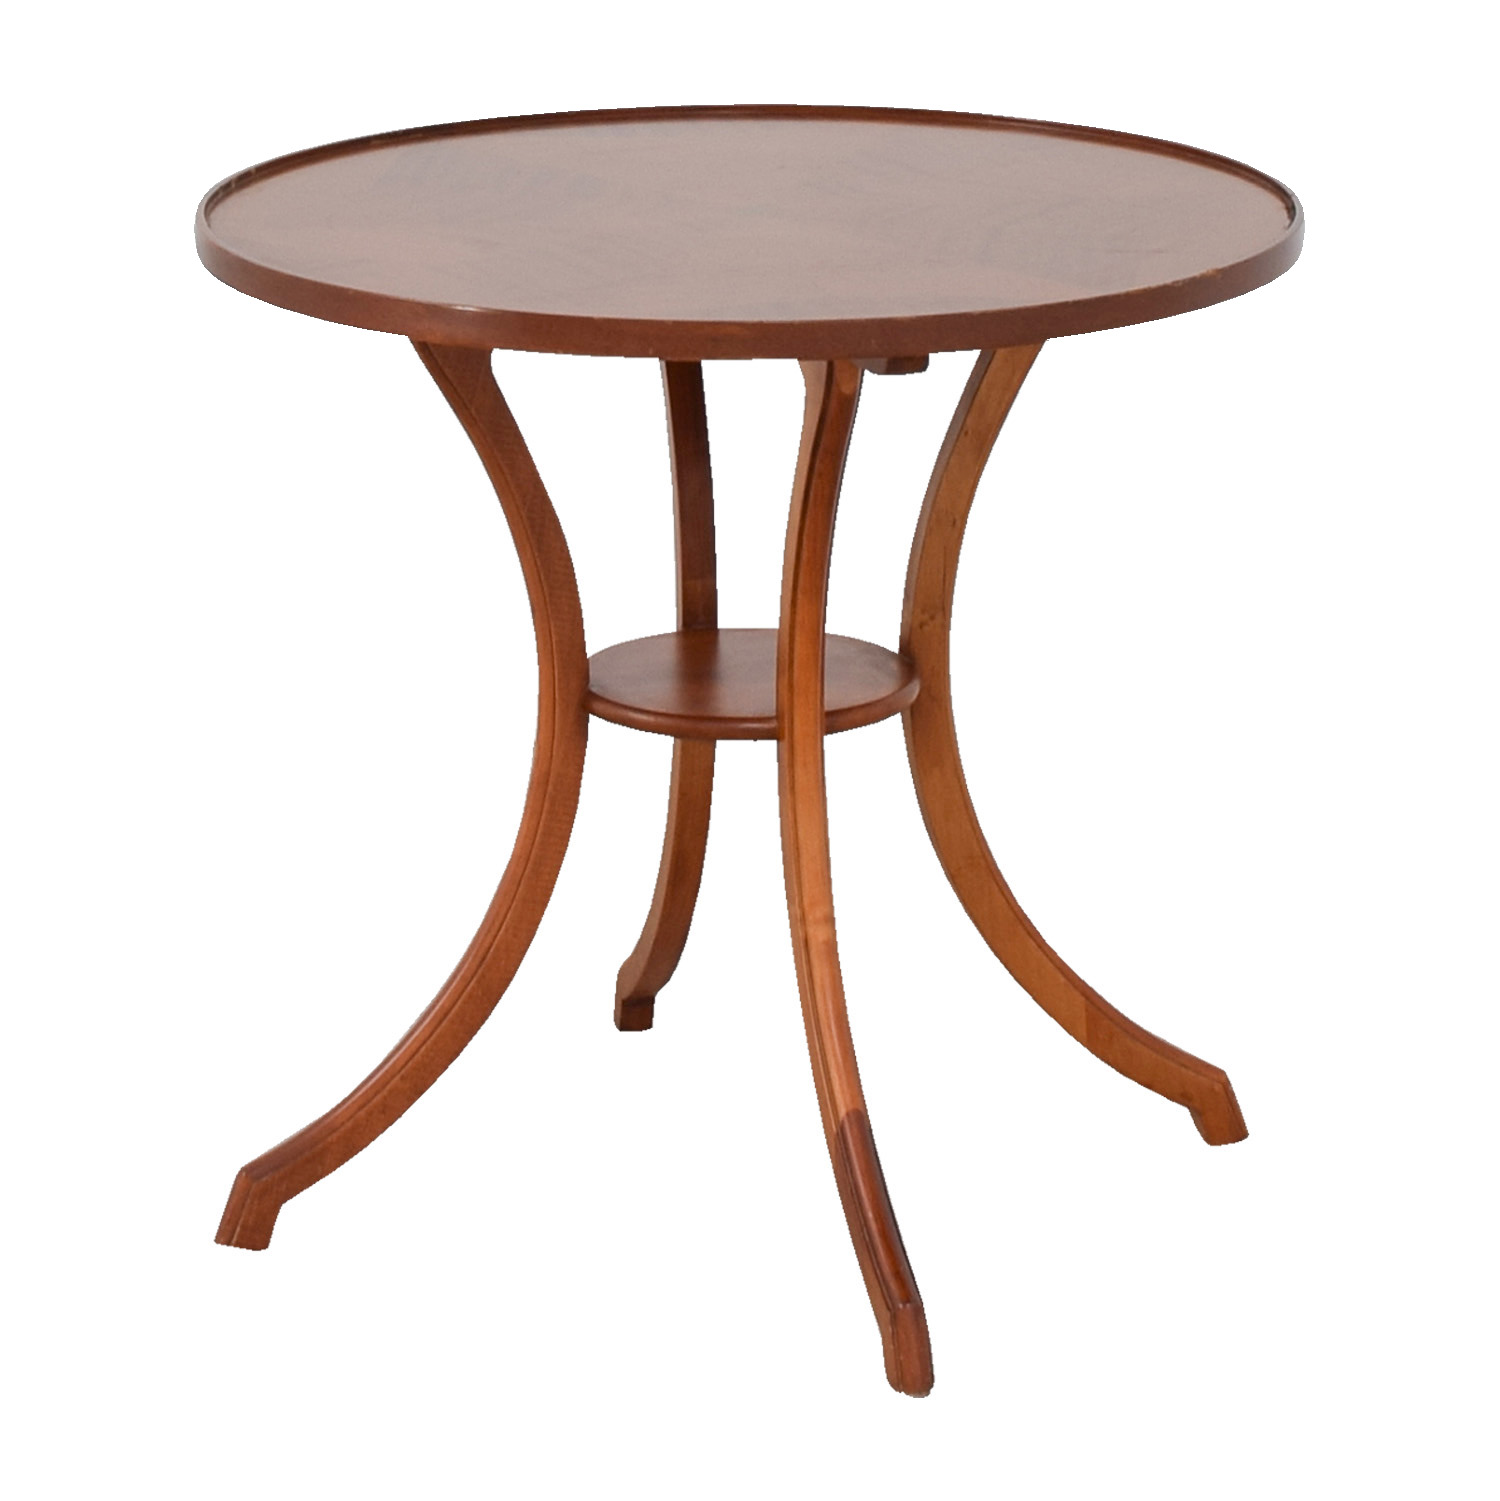 ... Furniture Masters Furniture Masters Round Wood Accent Table For Sale ...